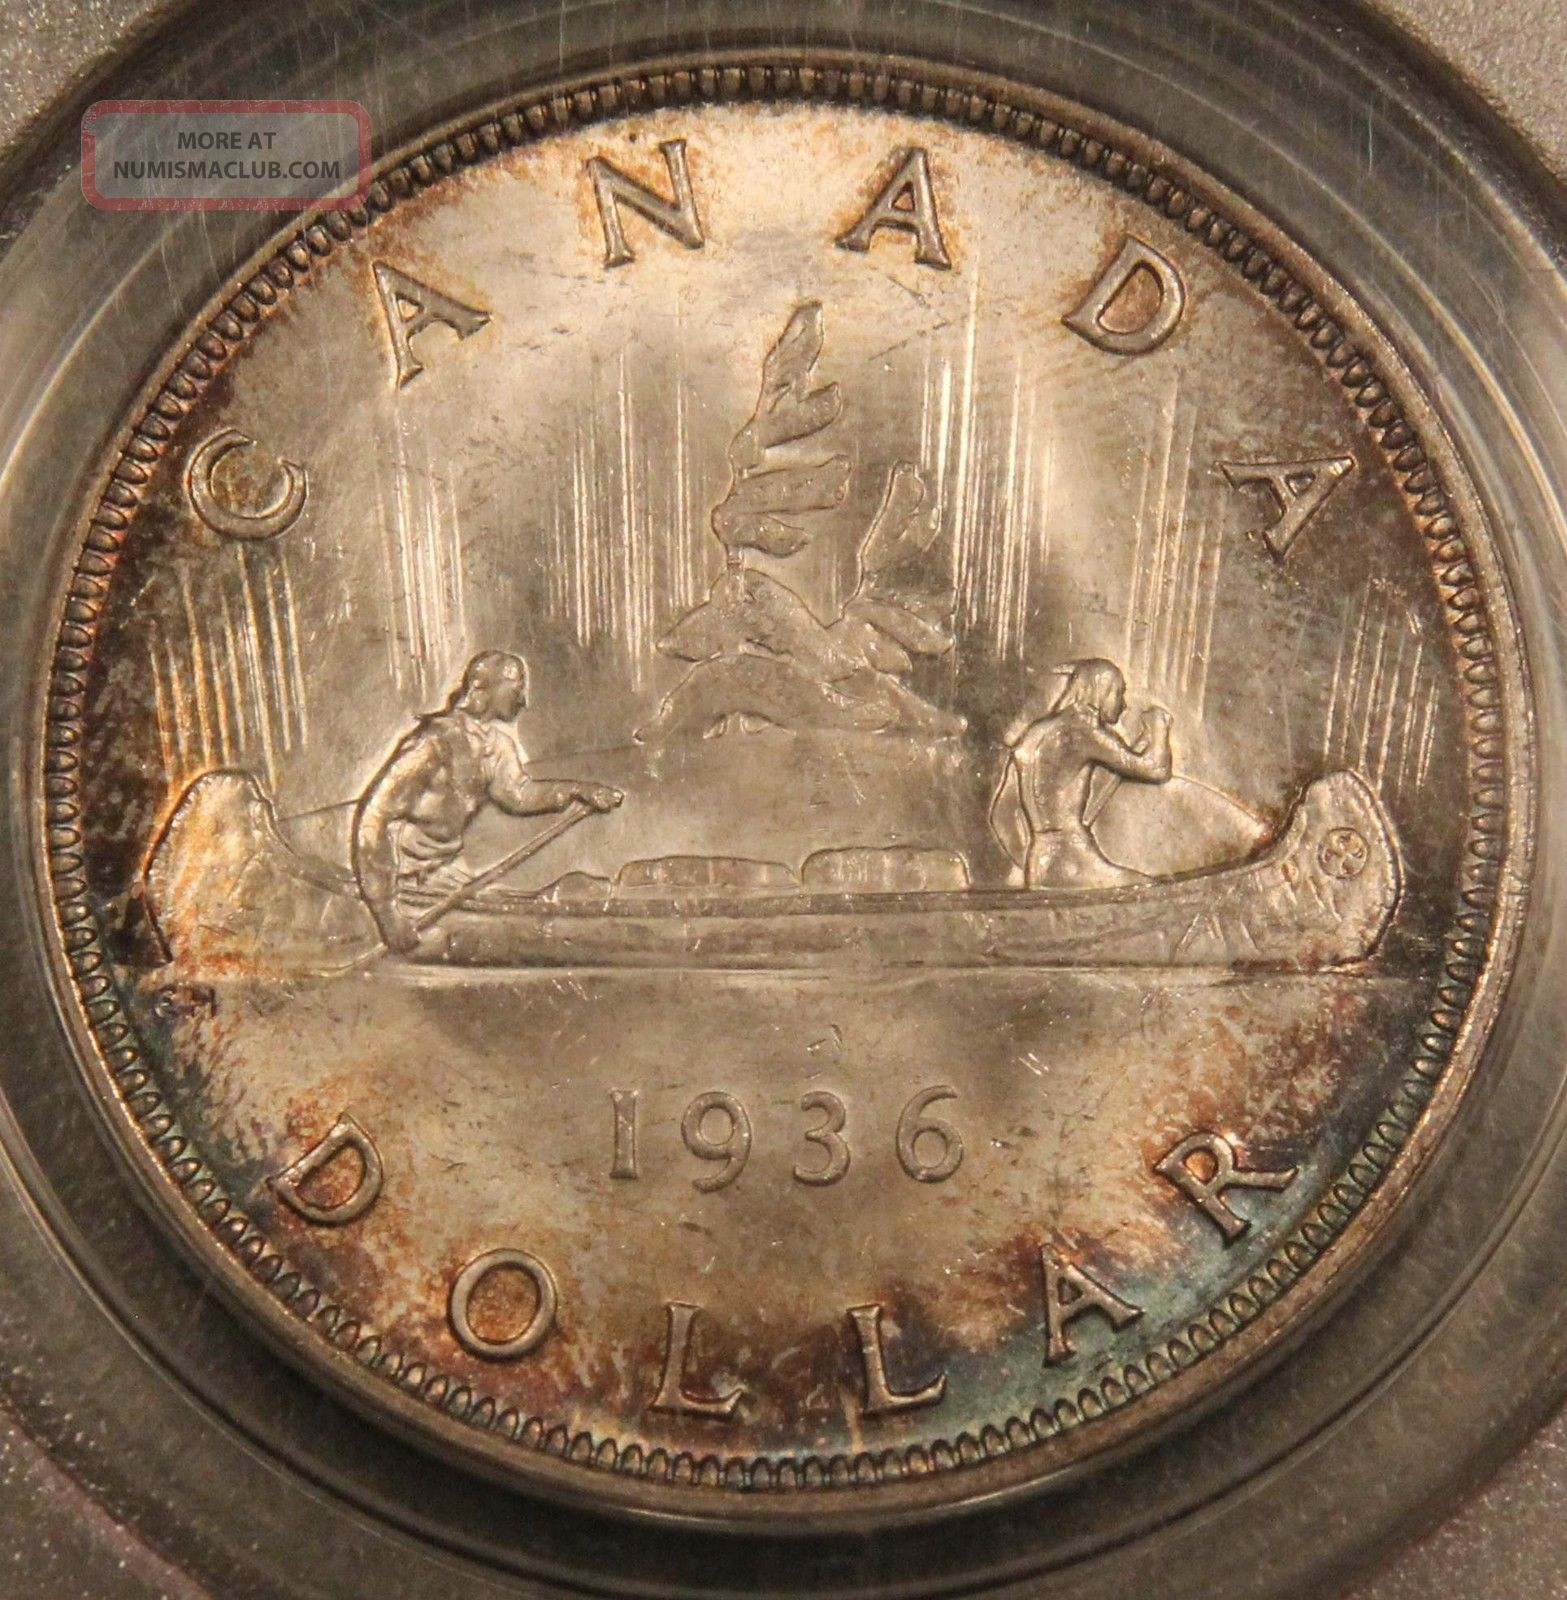 1936 Canada Silver Dollar Ms65 Pcgs Toned - Ogh Old Green Holder Coins: Canada photo